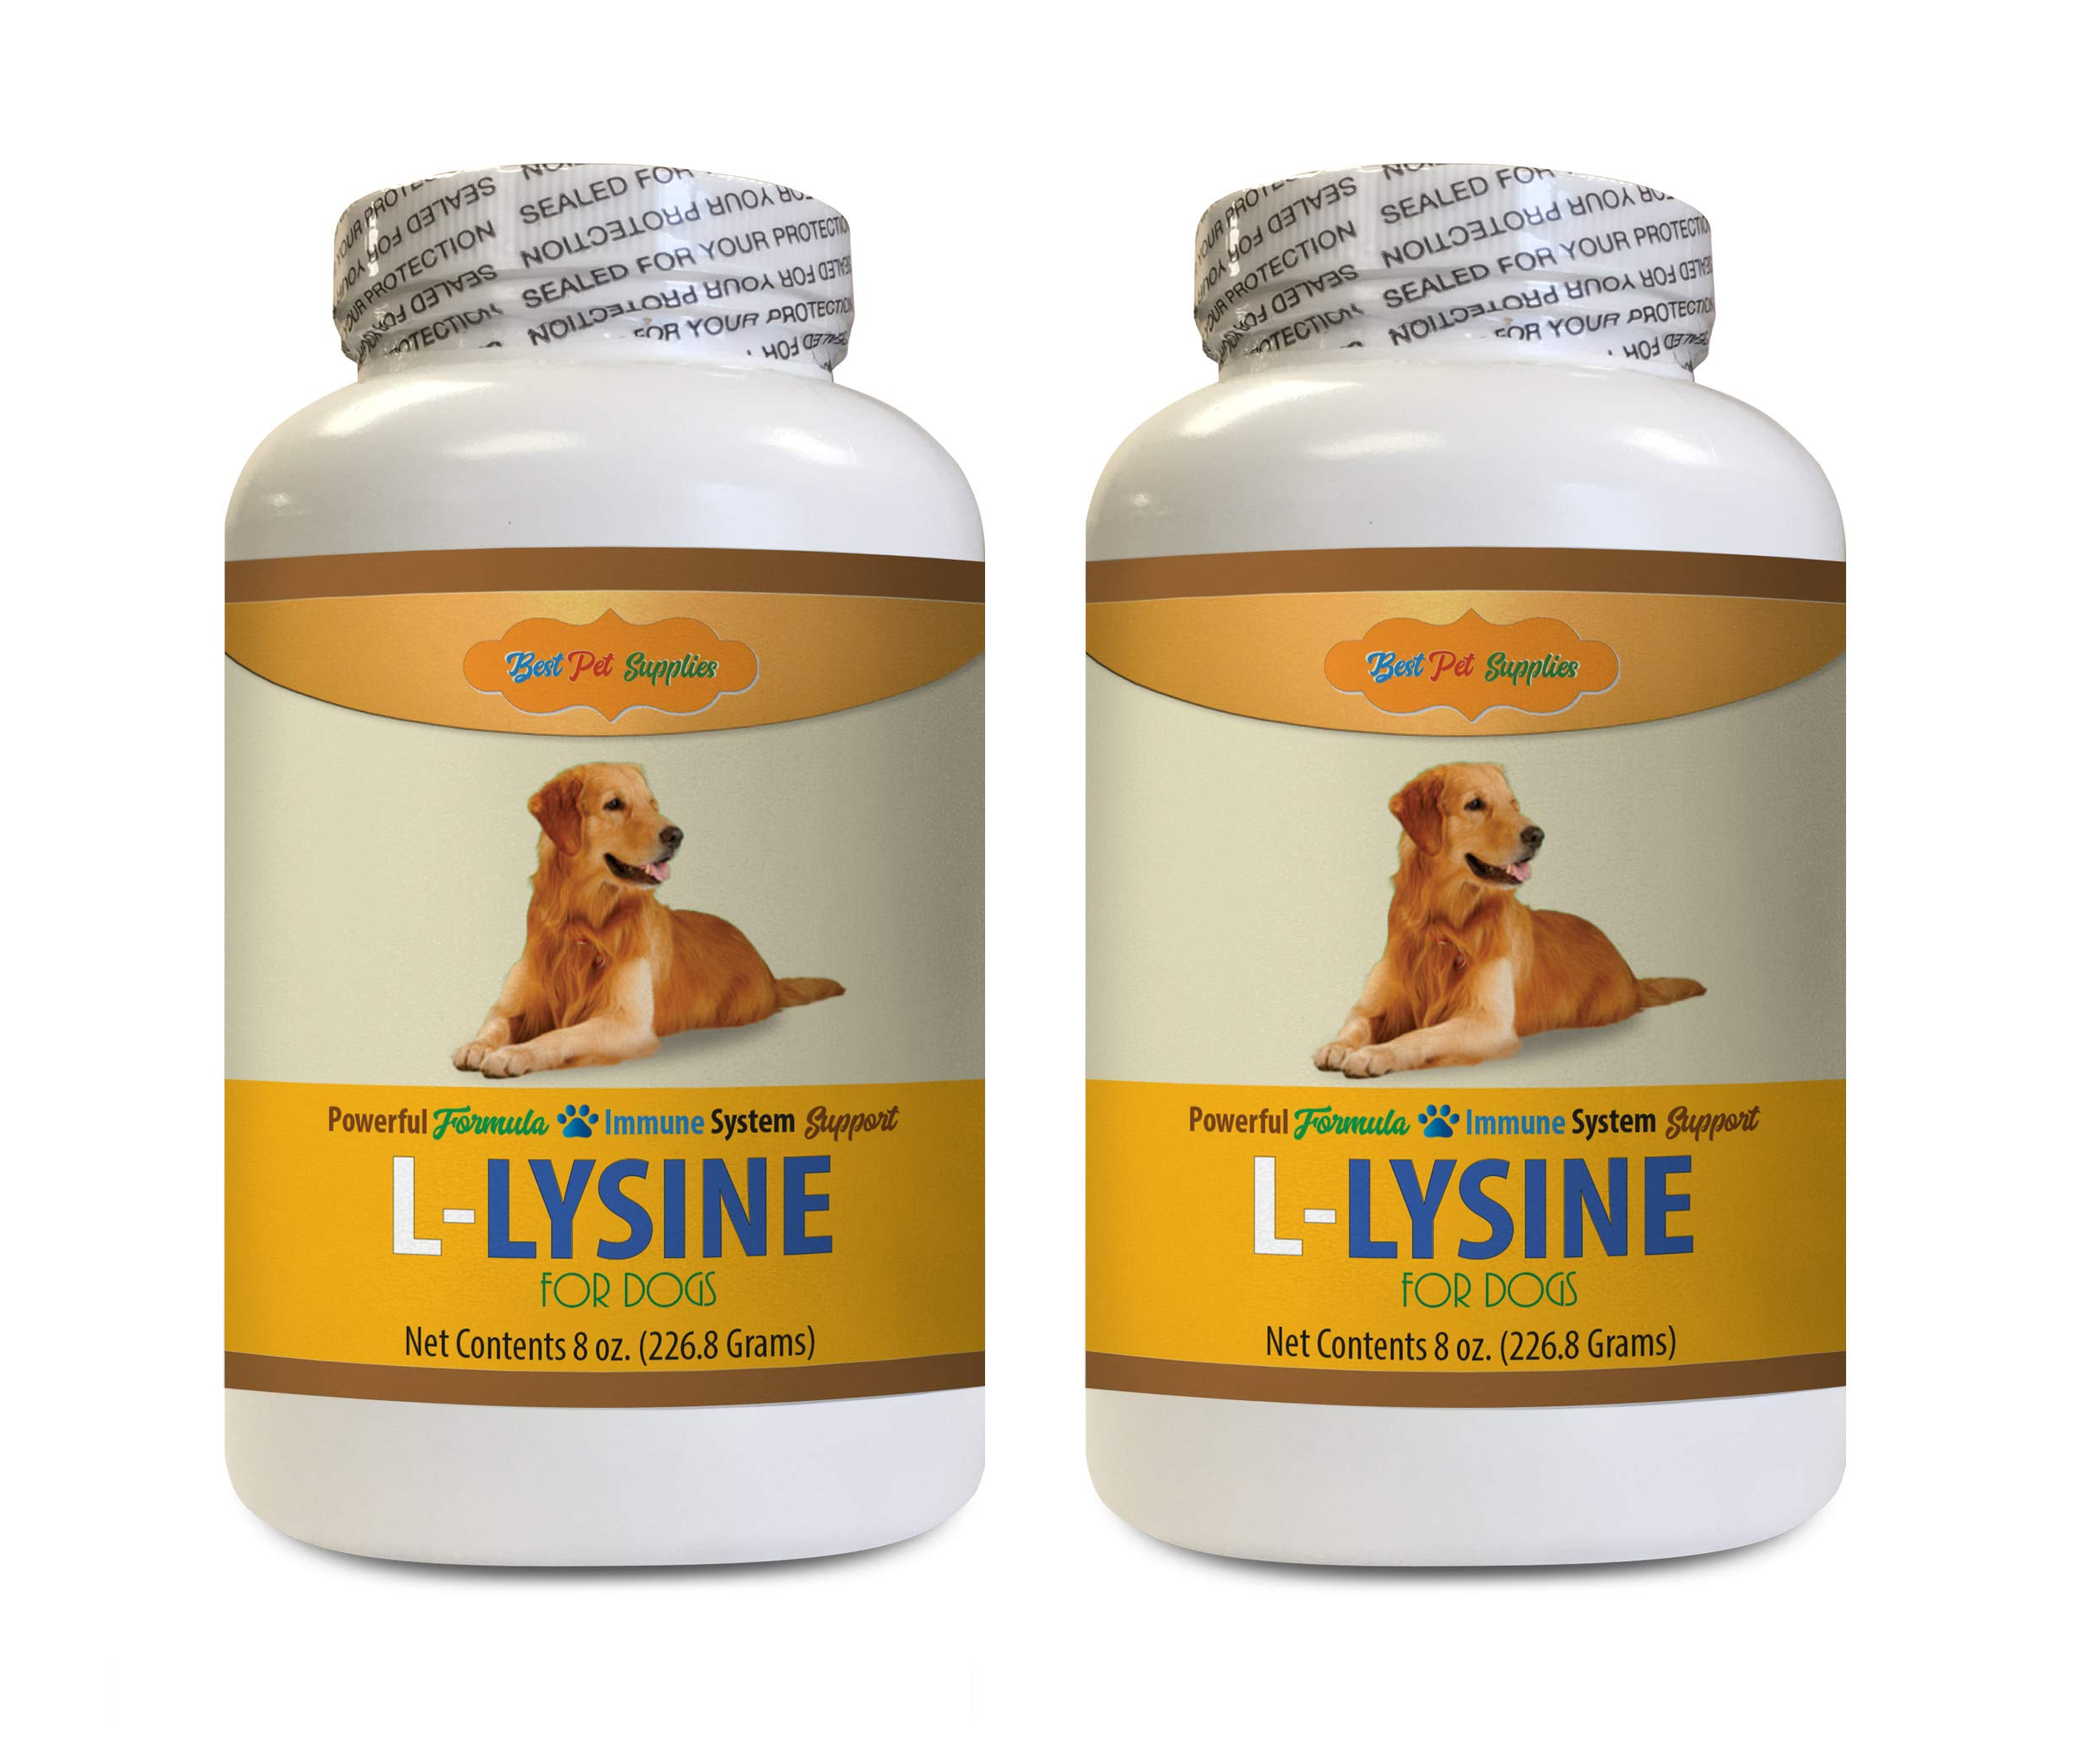 BEST PET SUPPLIES LLC Respiratory Support for Dogs - L LYSINE for Dogs Powder - Powerful Immune System Support - Mix with Food - Skin Eye and Bone Health - Dog Skin Soother - 2 Bottles (16 OZ) by BEST PET SUPPLIES LLC